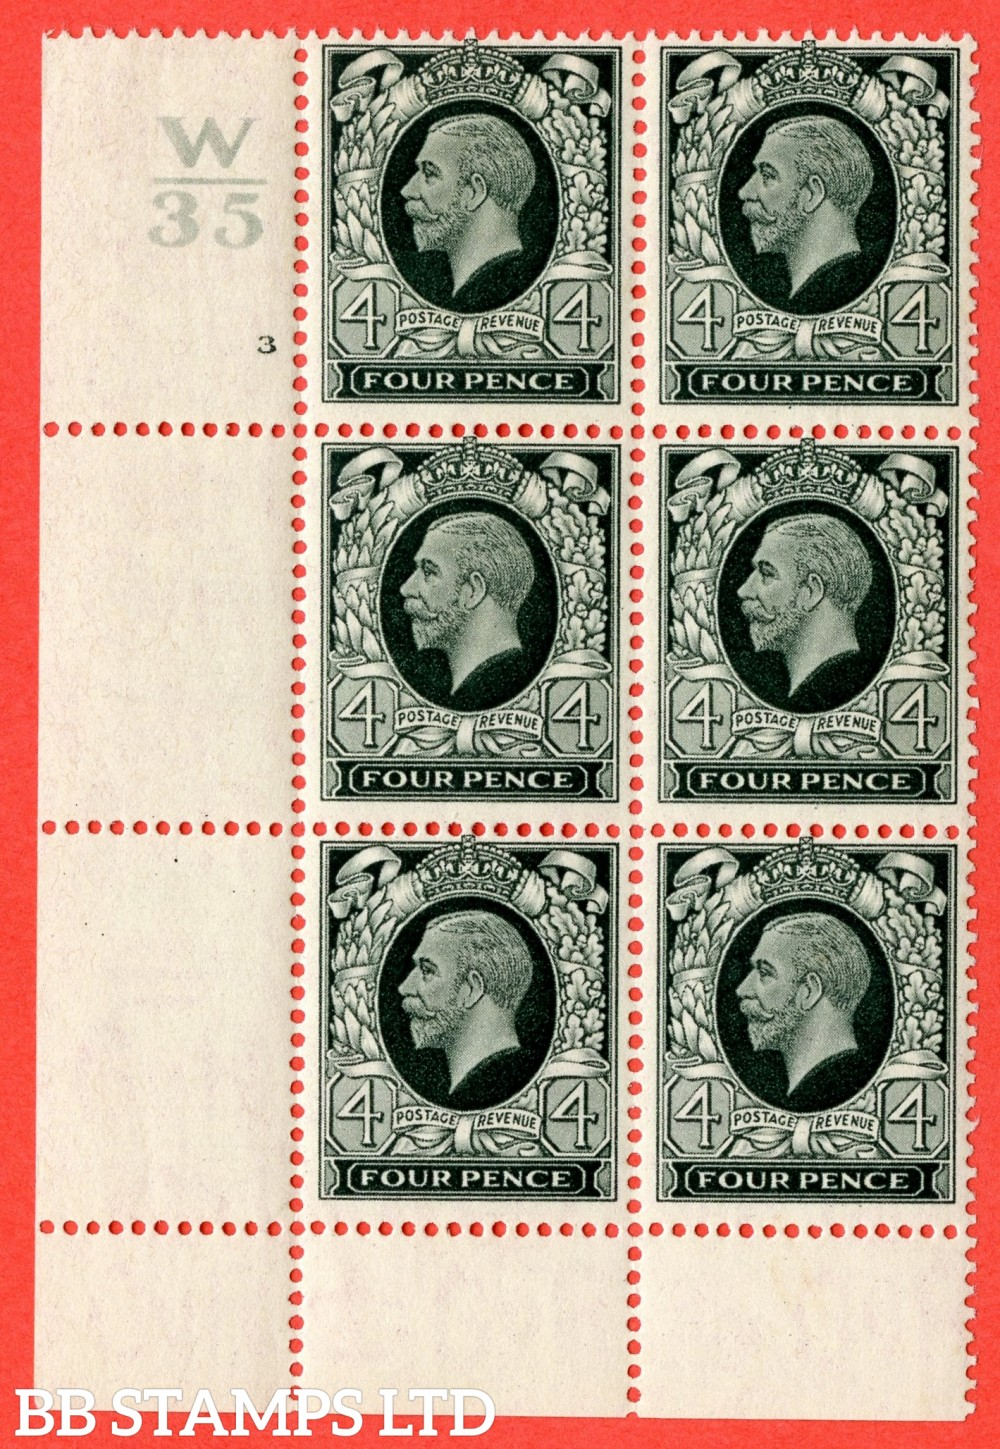 SG. 445. N58. 4d Grey-Green. A fine mint block of 6. Control W35. Cylinder 3 dot perf type 2A P/P. Cylinder 3 perf type 2A (P/P) has not dot, presumably ommitted in error.